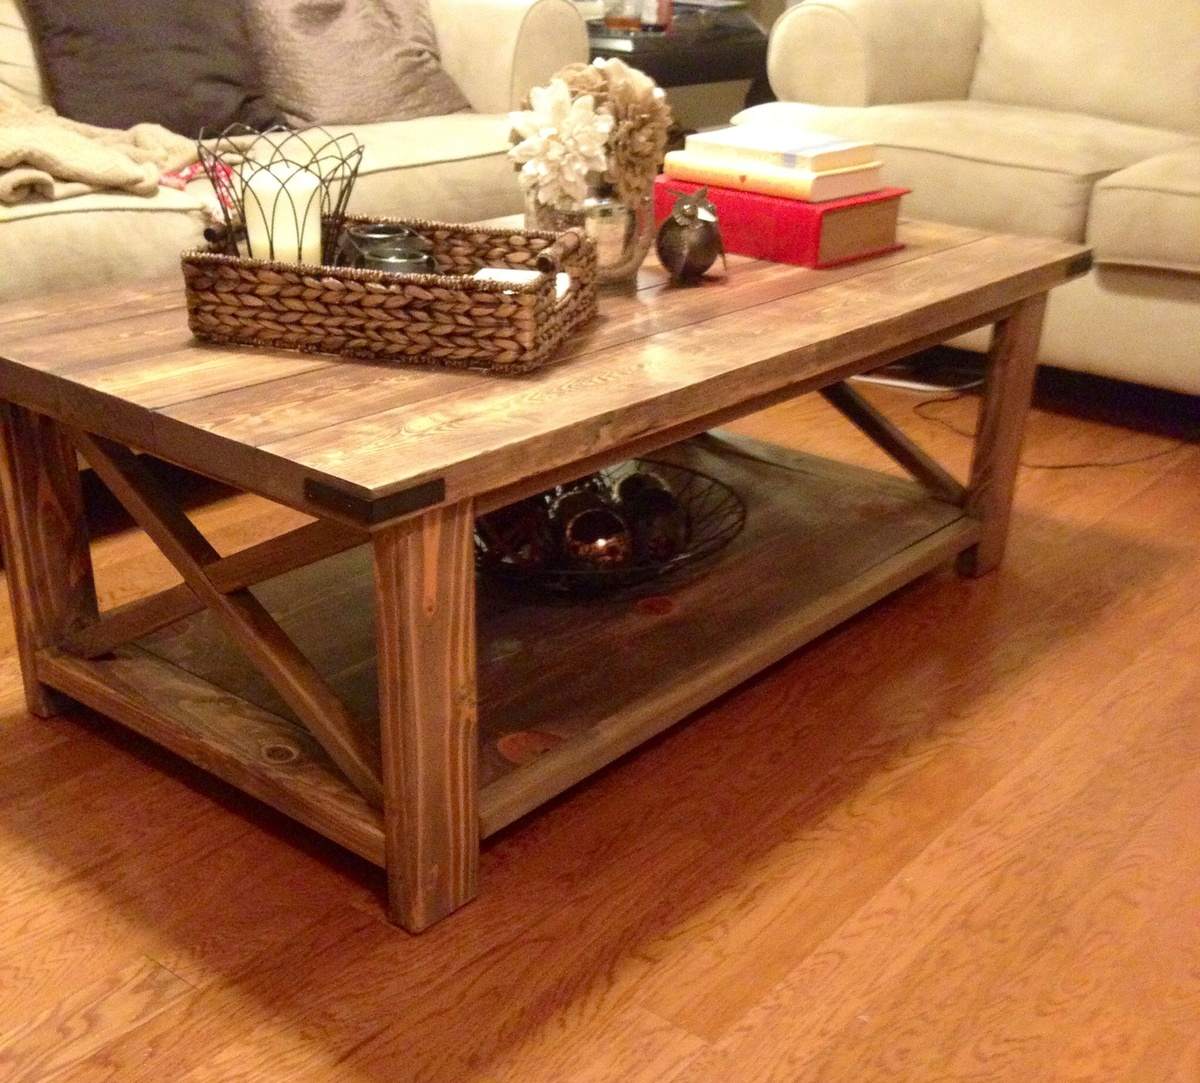 Ana White Rustic X Coffee Table DIY Projects - Rustic cream coffee table